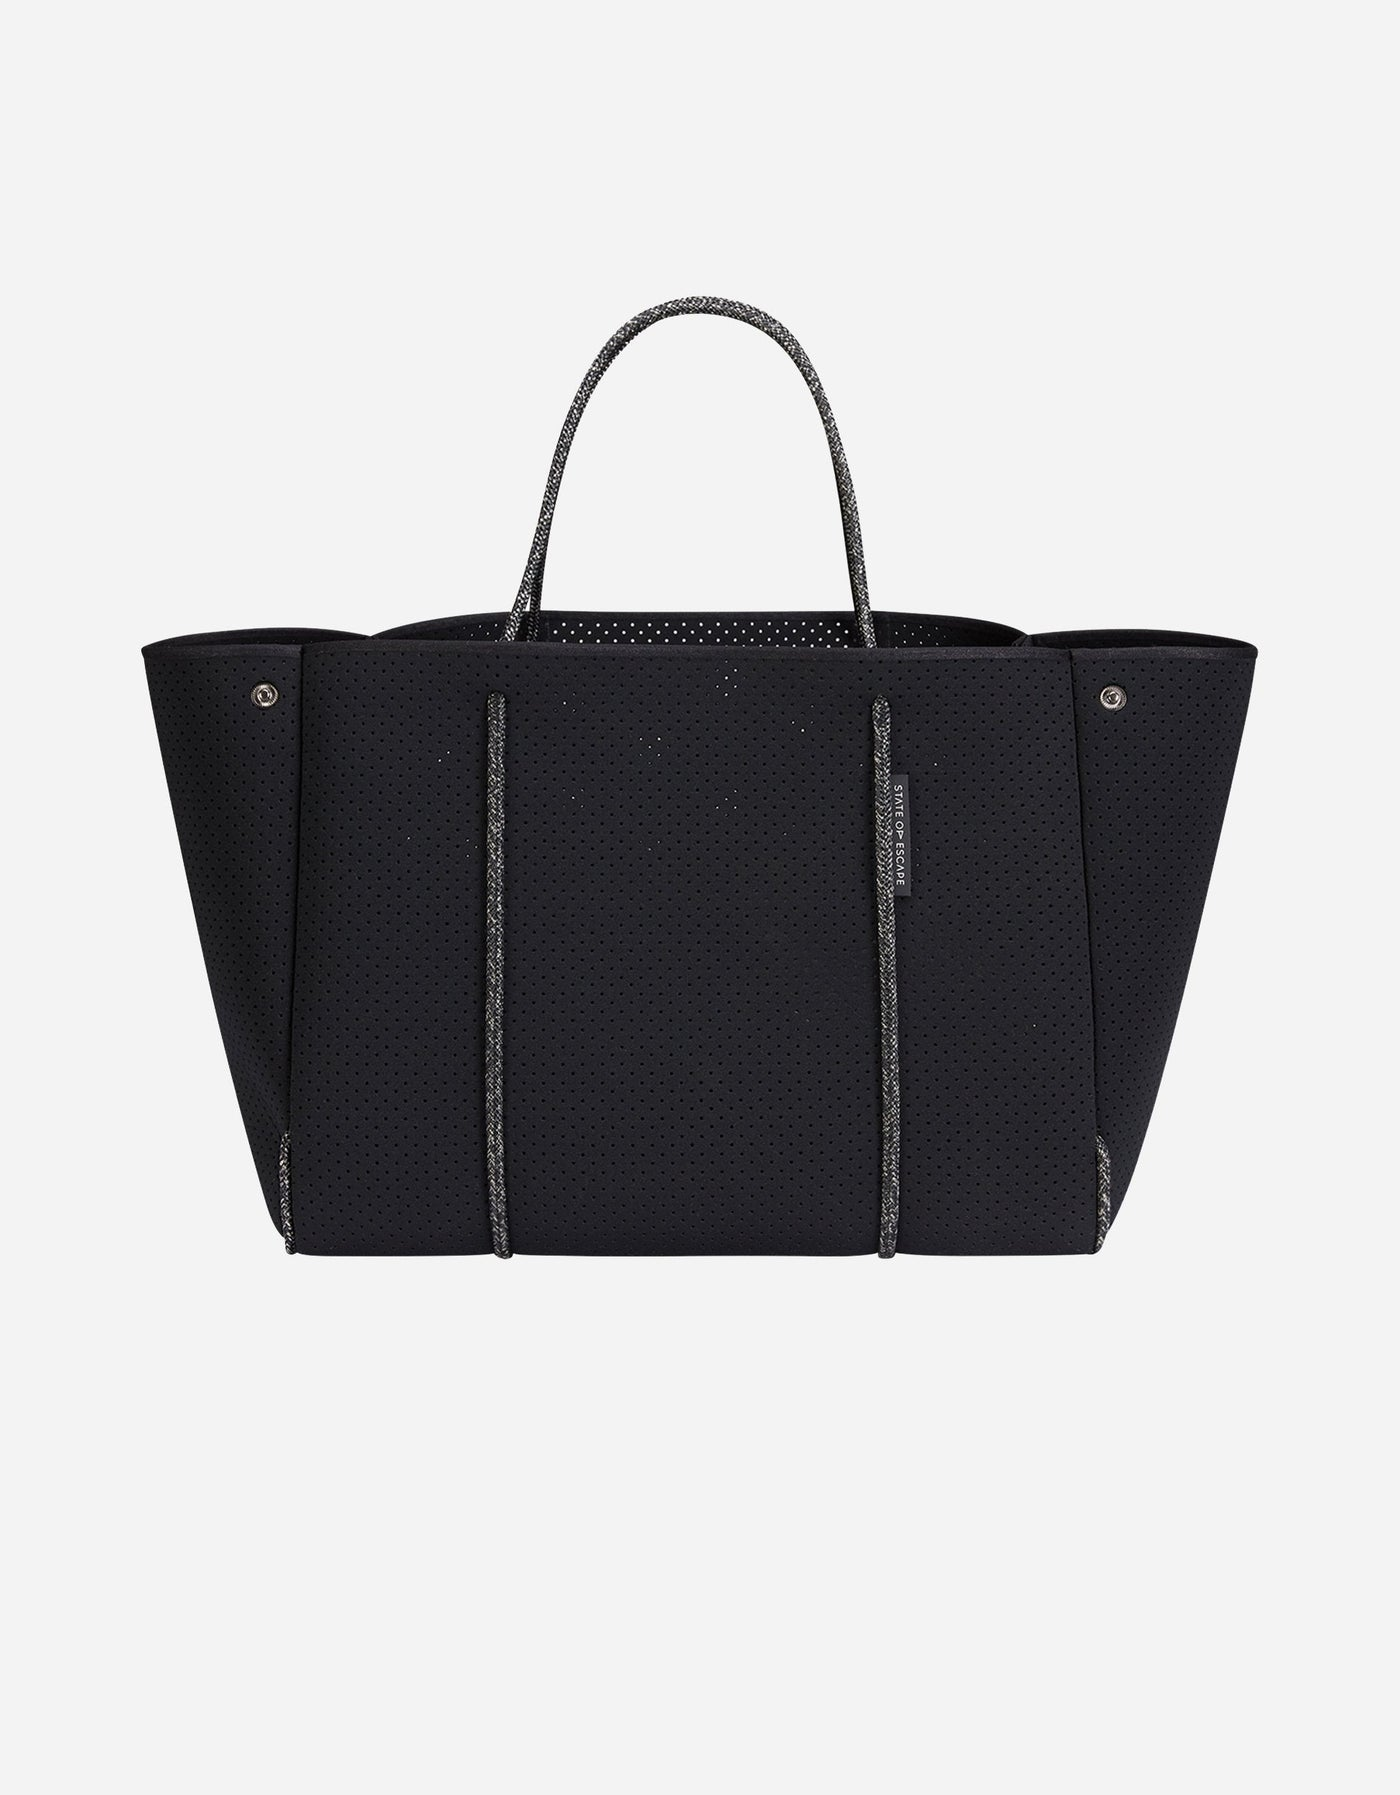 Escape tote in black with blended rope